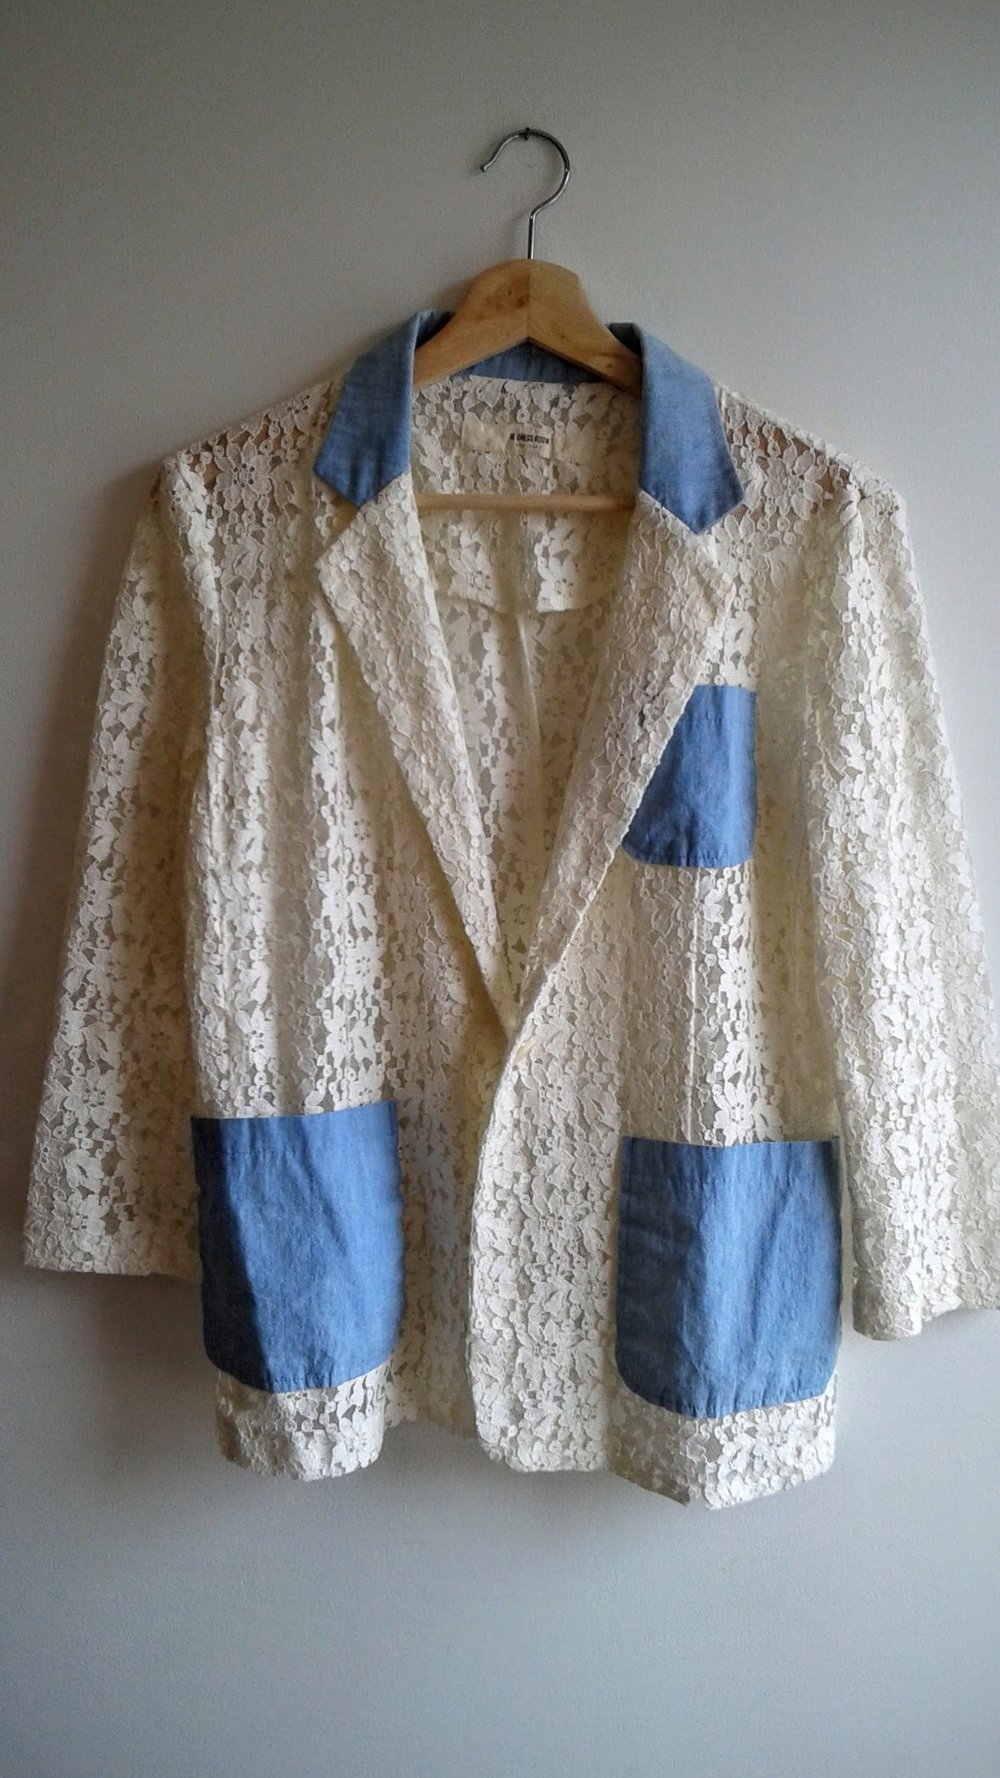 W. Dress Room  jacket; Size M, $30